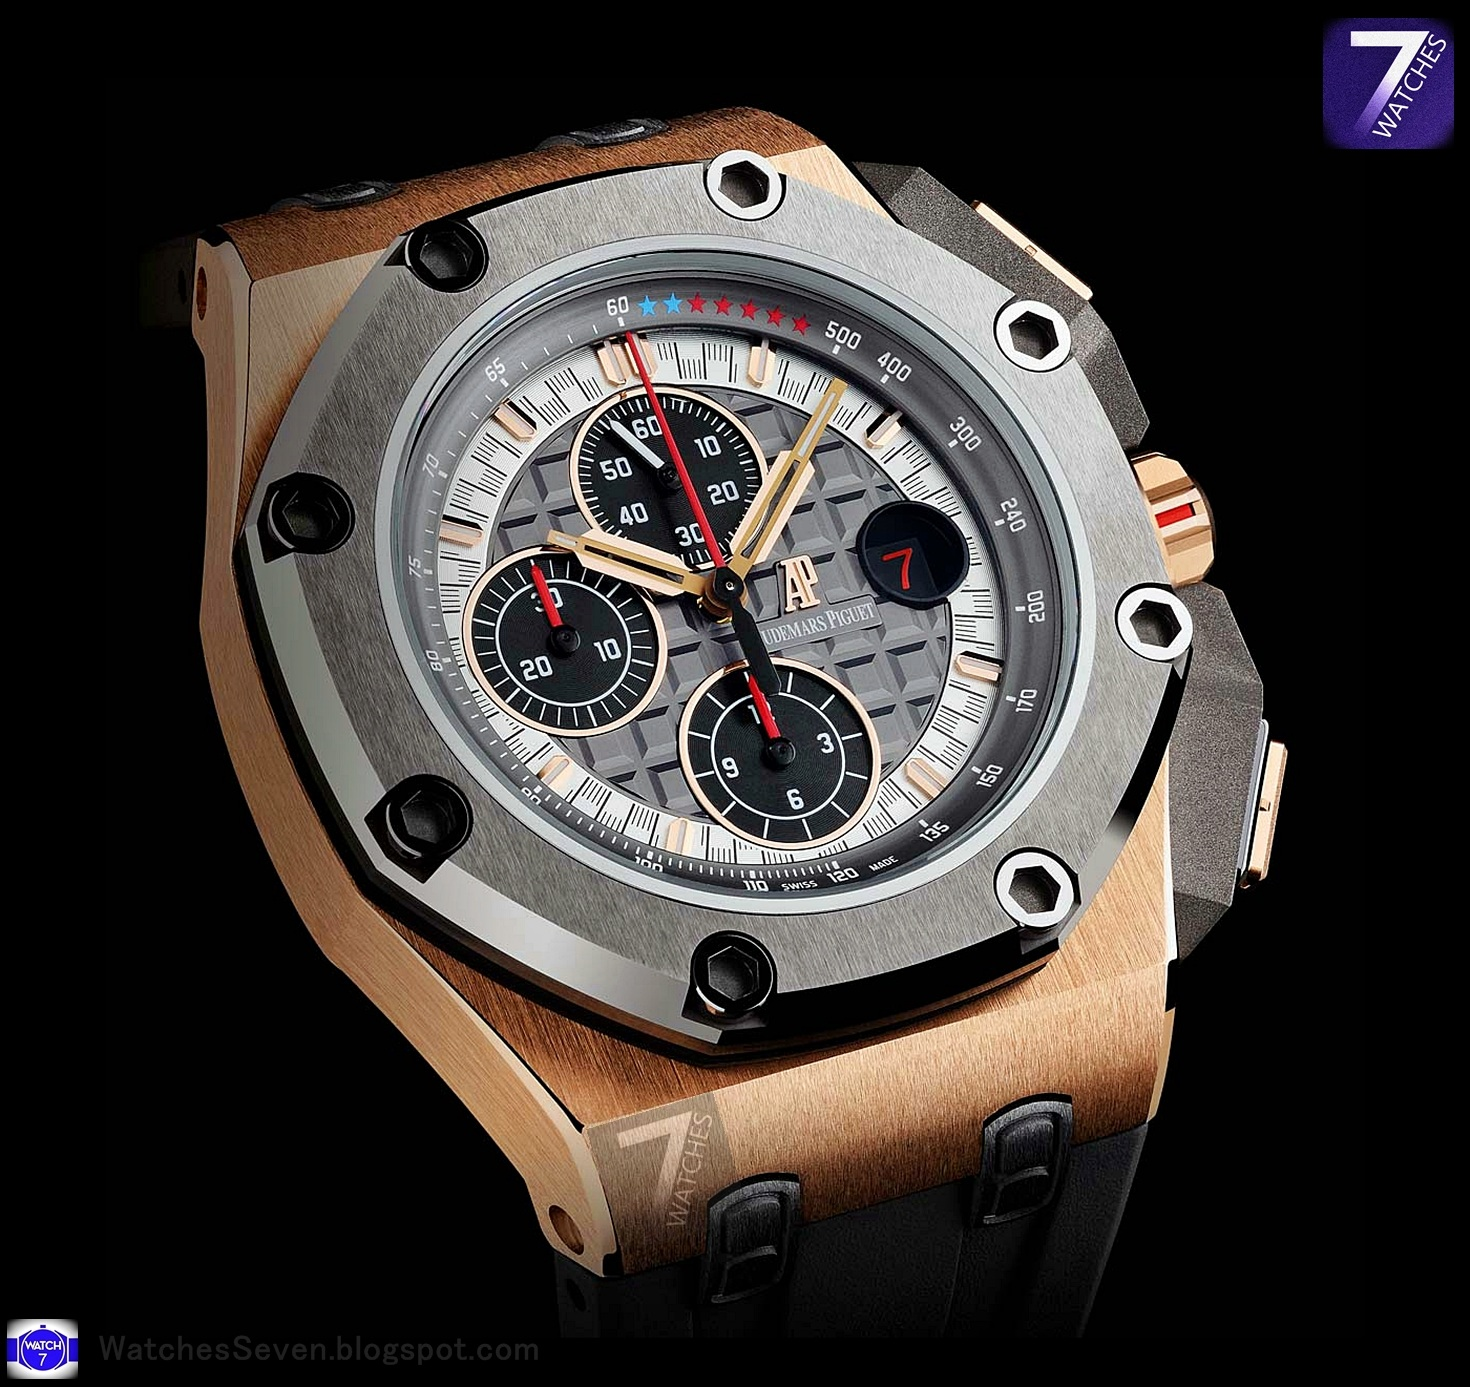 Watches 7 audemars piguet royal oak offshore michael schumacher limited edition for Audemars watches